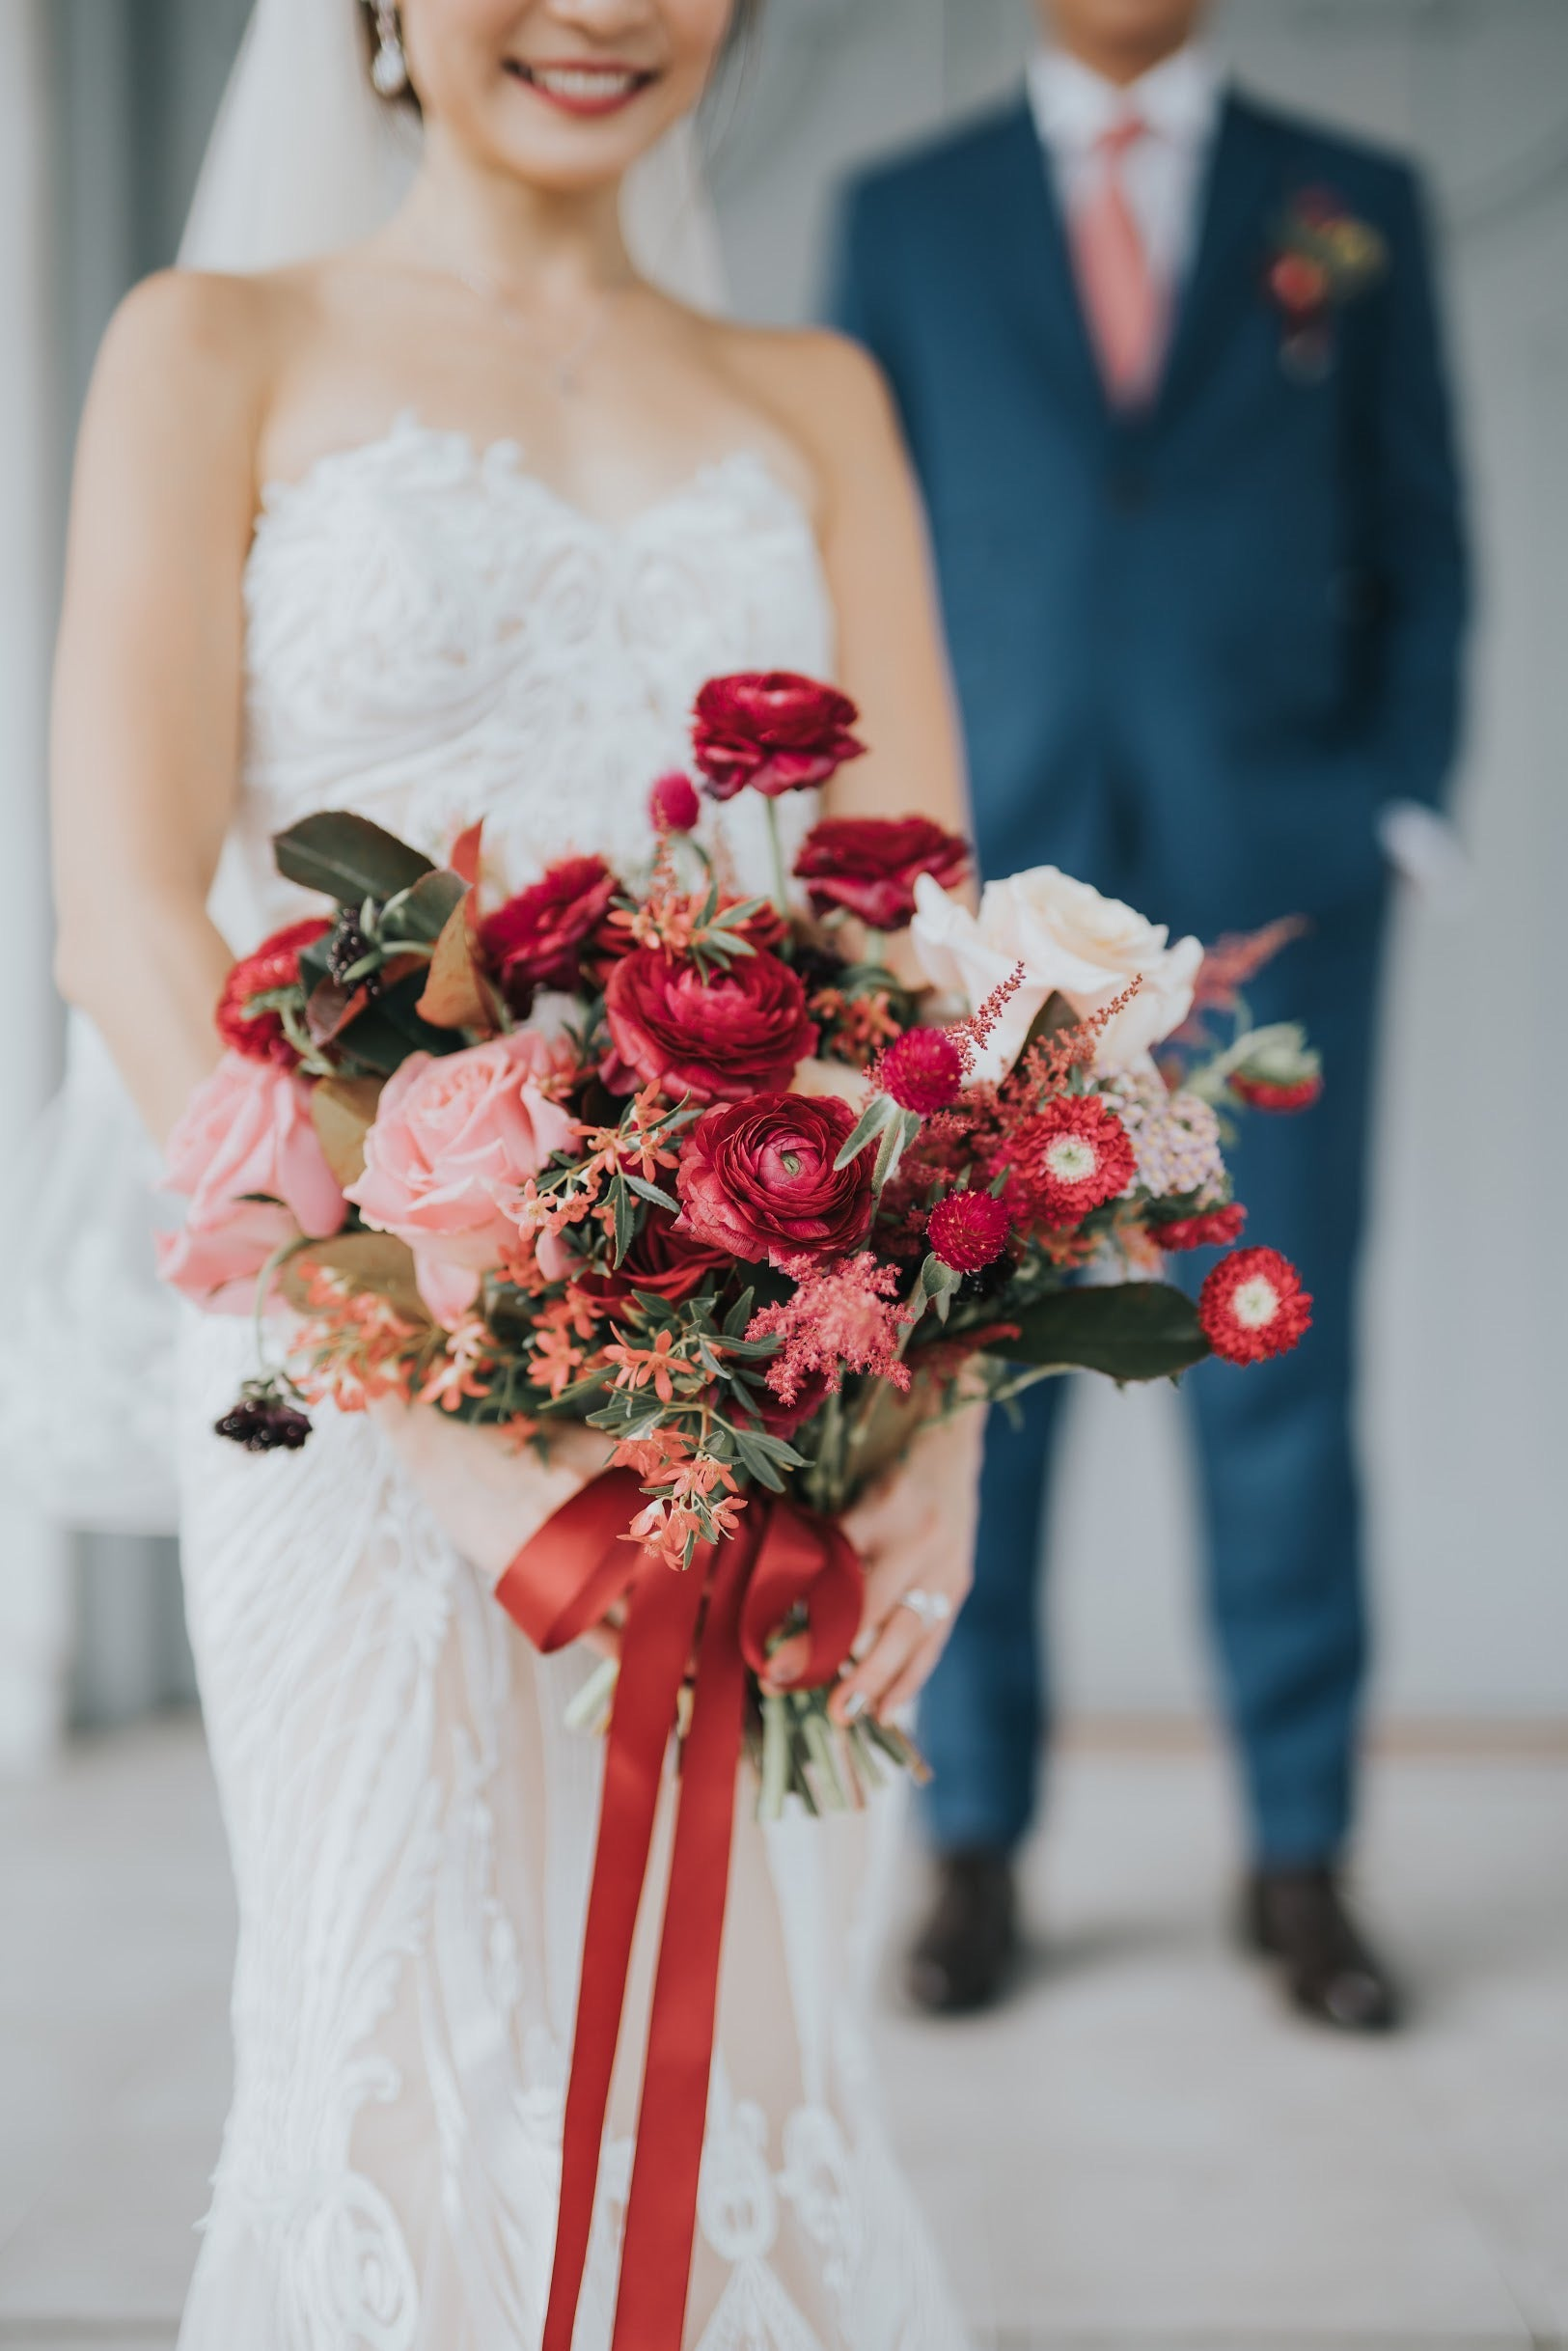 Close up of bride's bouquet of exotic red flowers